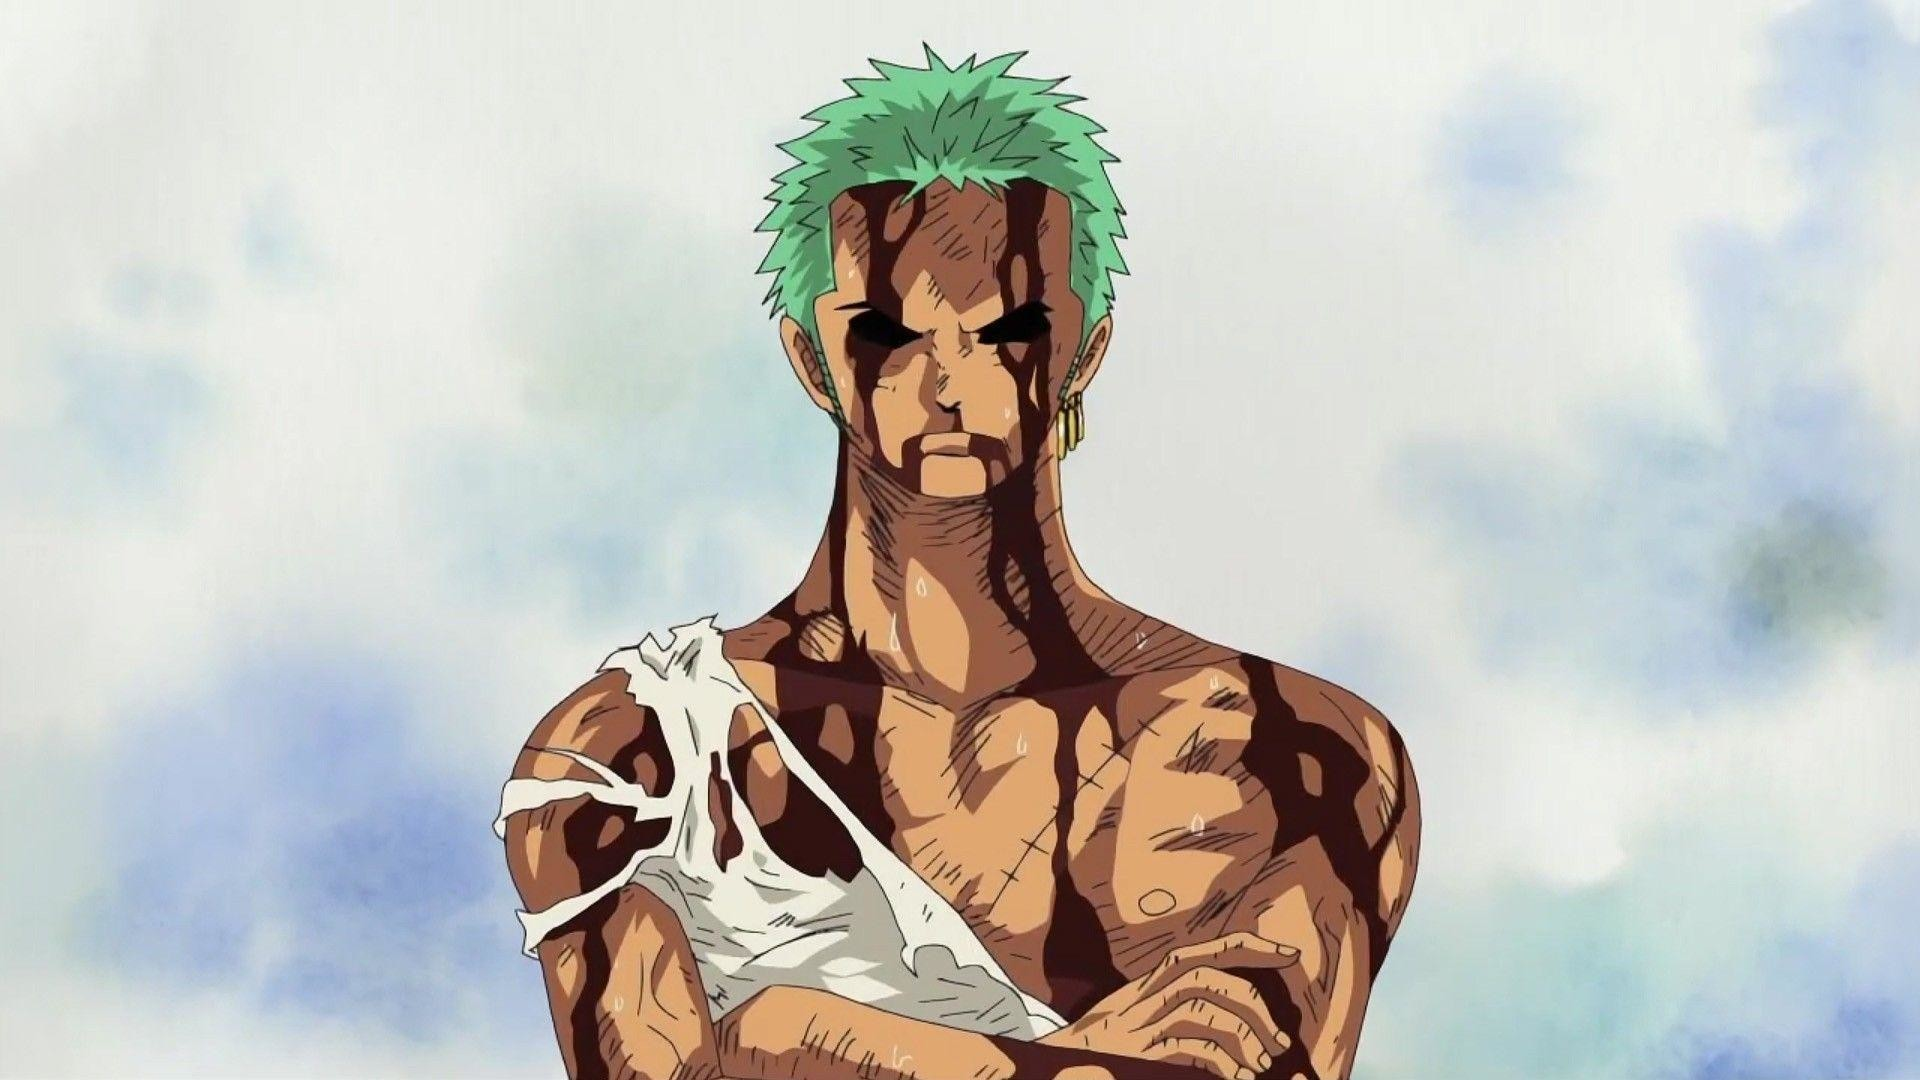 1920x1080 Wallpapers For > One Piece Zoro Iphone Wallpaper